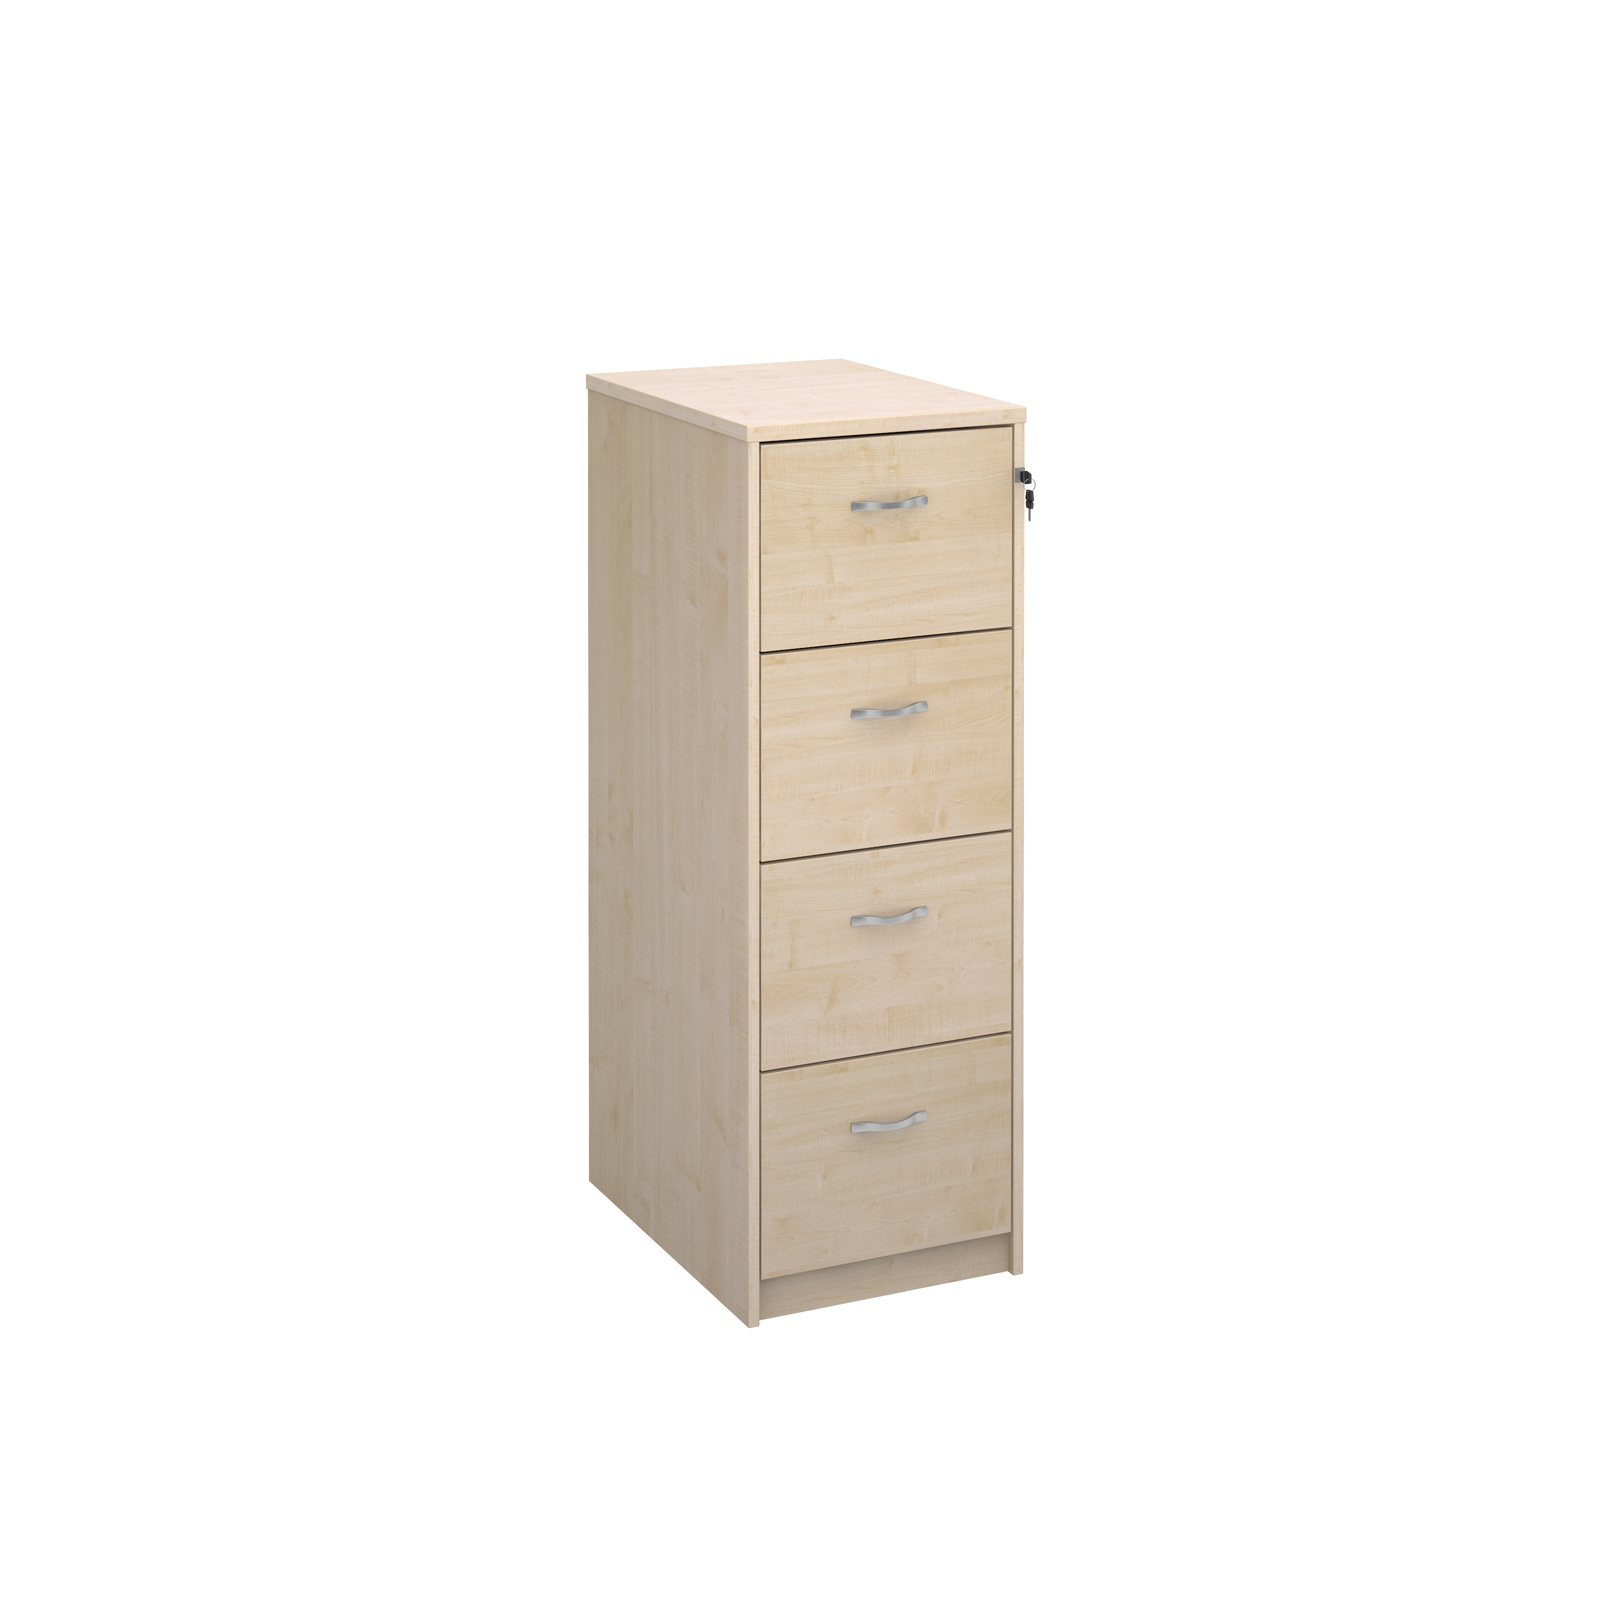 Wood Wooden 4 drawer filing cabinet with silver handles 1360mm high - maple